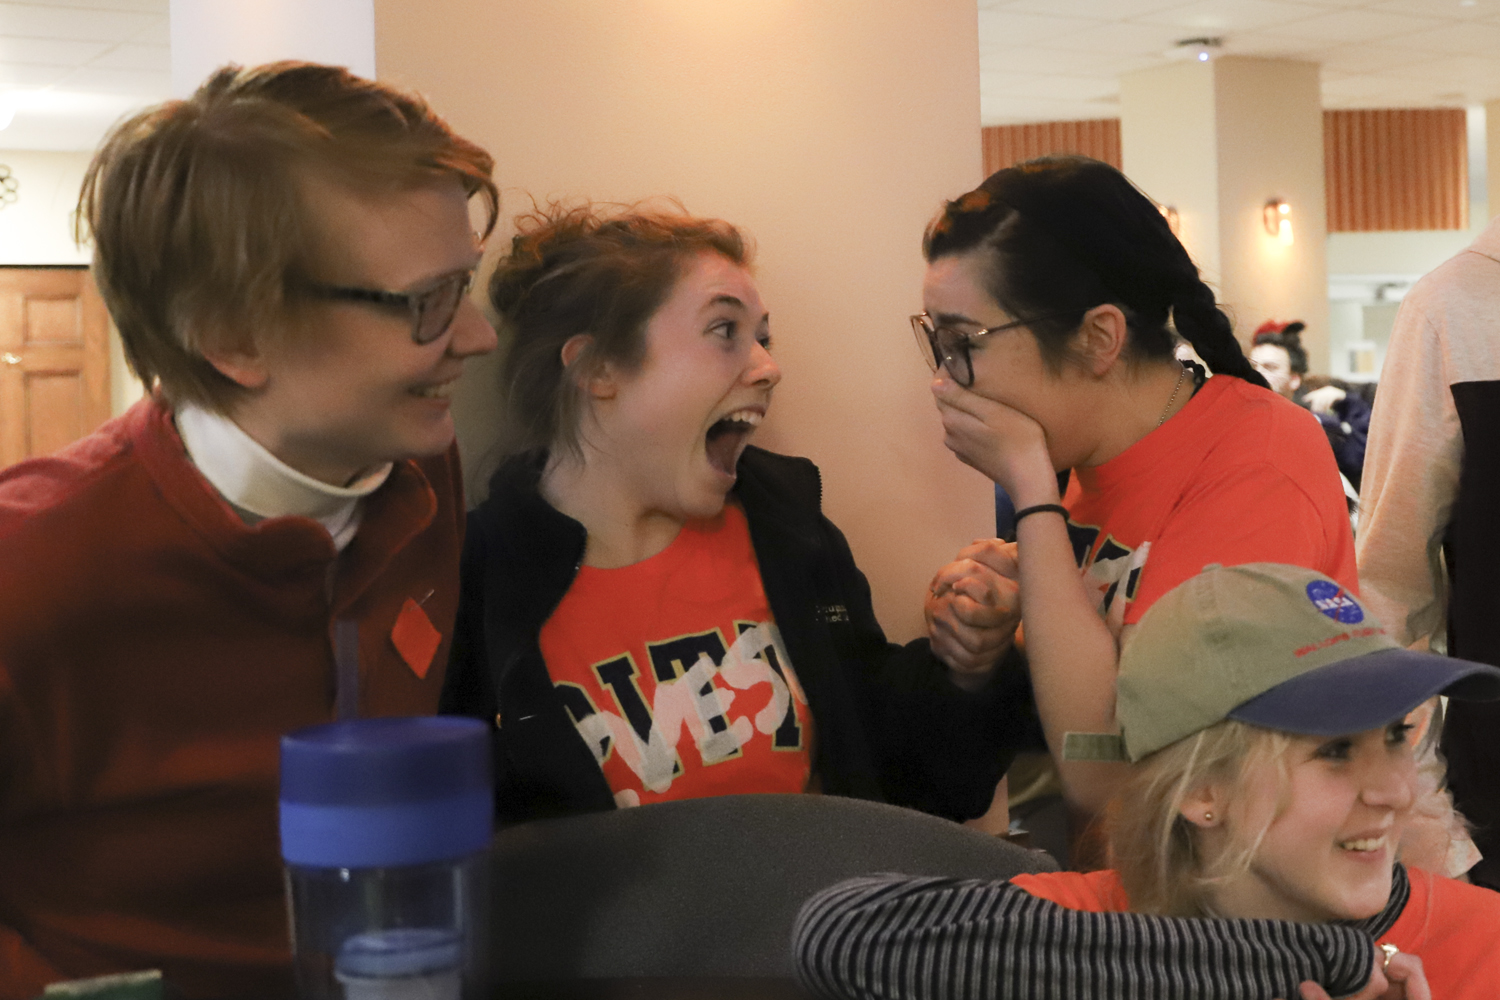 Anaïs Peterson (top right) and members of Fossil Free Pitt react to hearing that Peterson won the runoff election for SGB executive vice president.